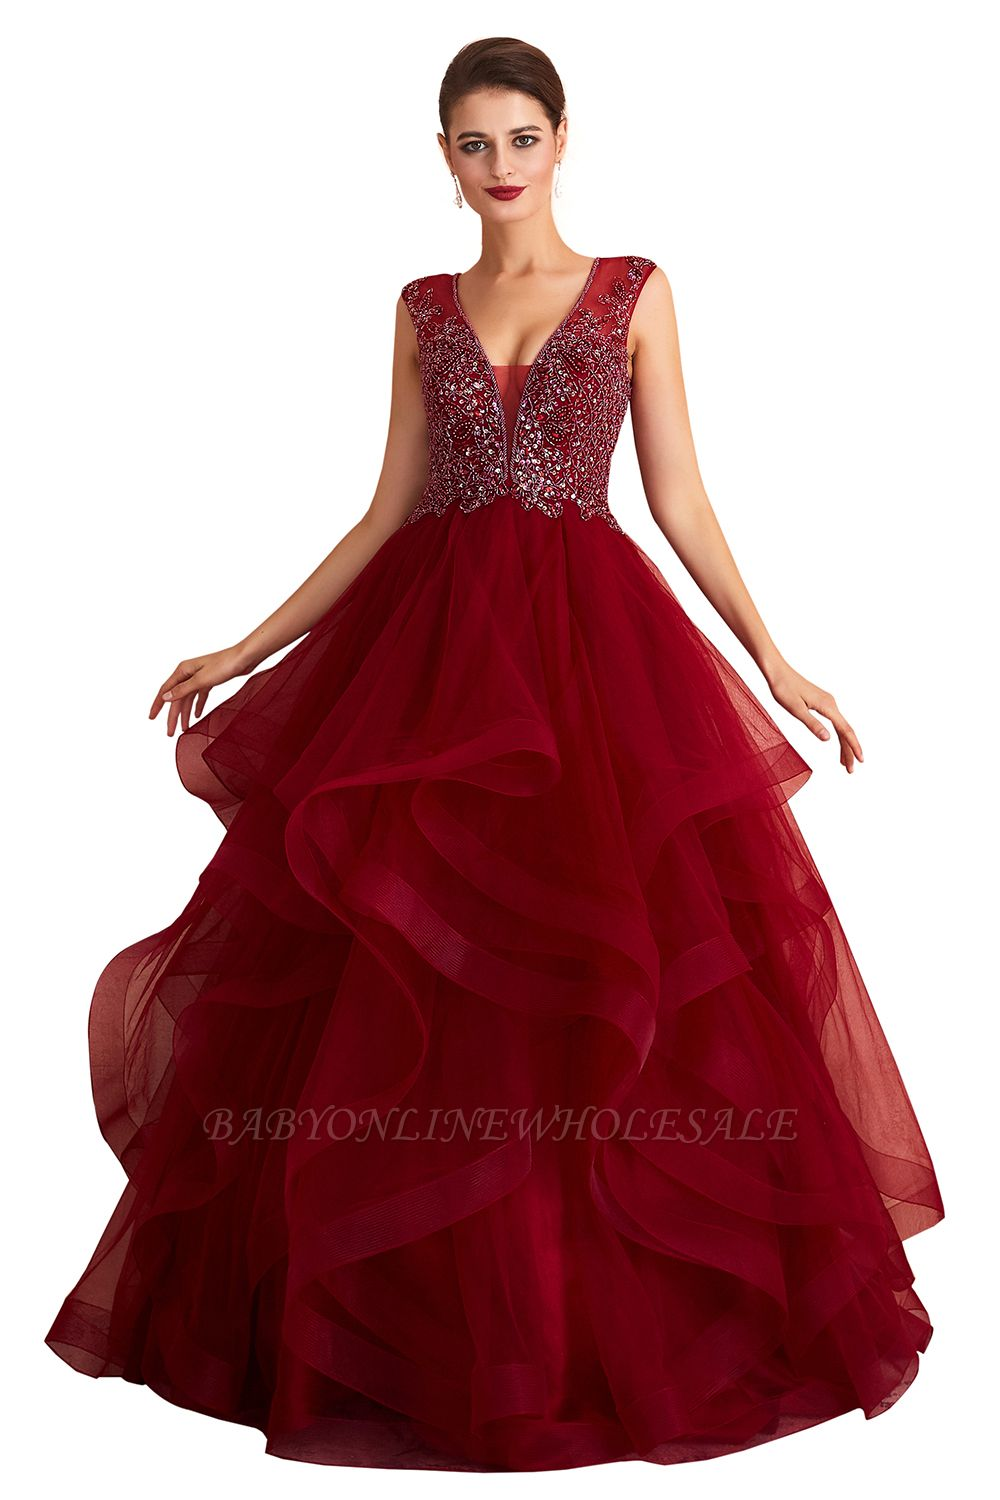 Cherise | Wine Red V-neck Sparkle Prom Dress with Muti-layers, Discount Burgundy Sleevleless Ball Gown for Online Sale